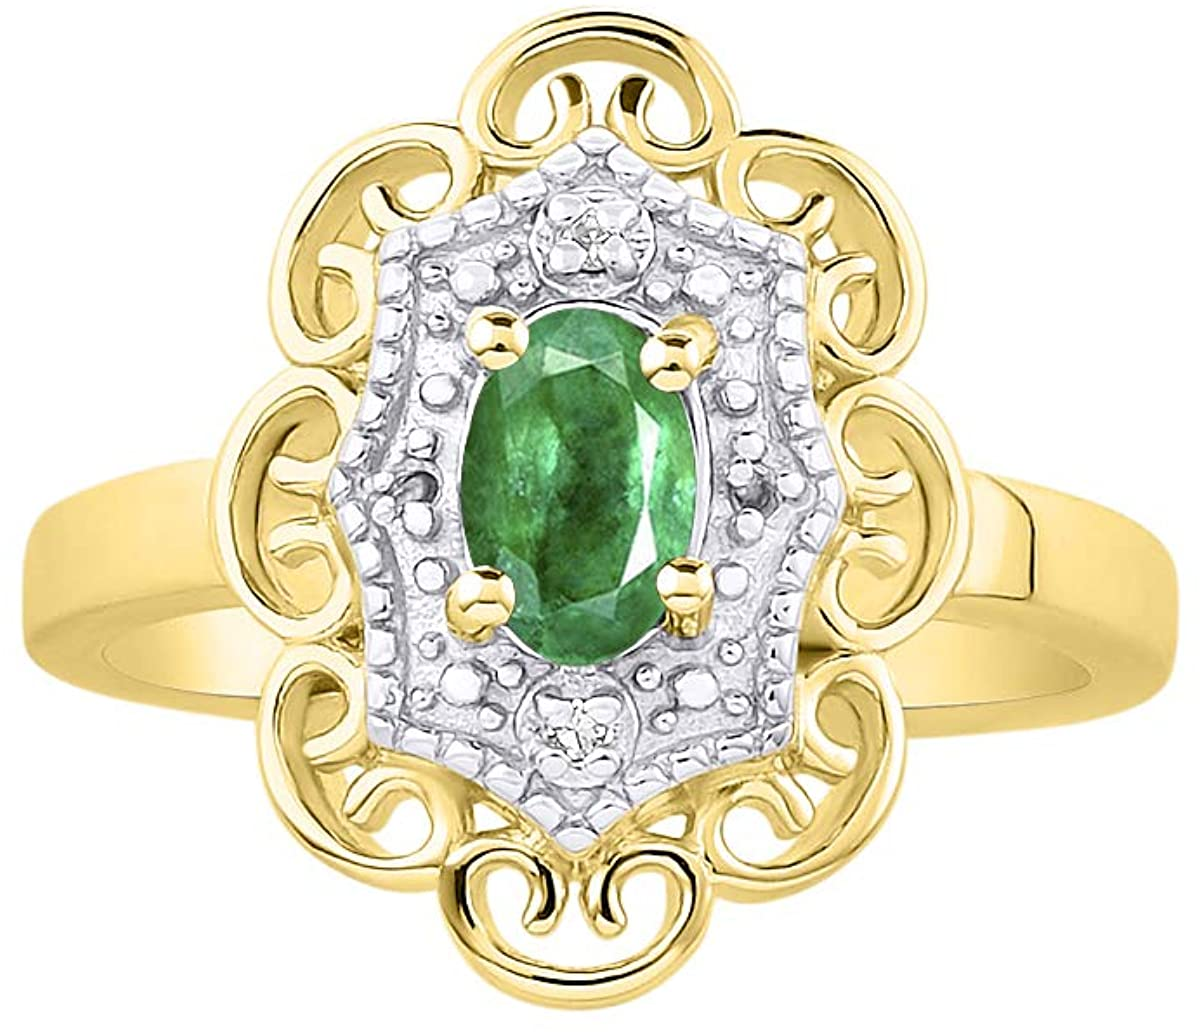 RYLOS Floral Pattern Ring with Oval Shape Gemstone & Genuine Sparkling Diamonds in 14K Yellow Gold Plated Silver .925-6X4MM Color Stone Birthstone Rings